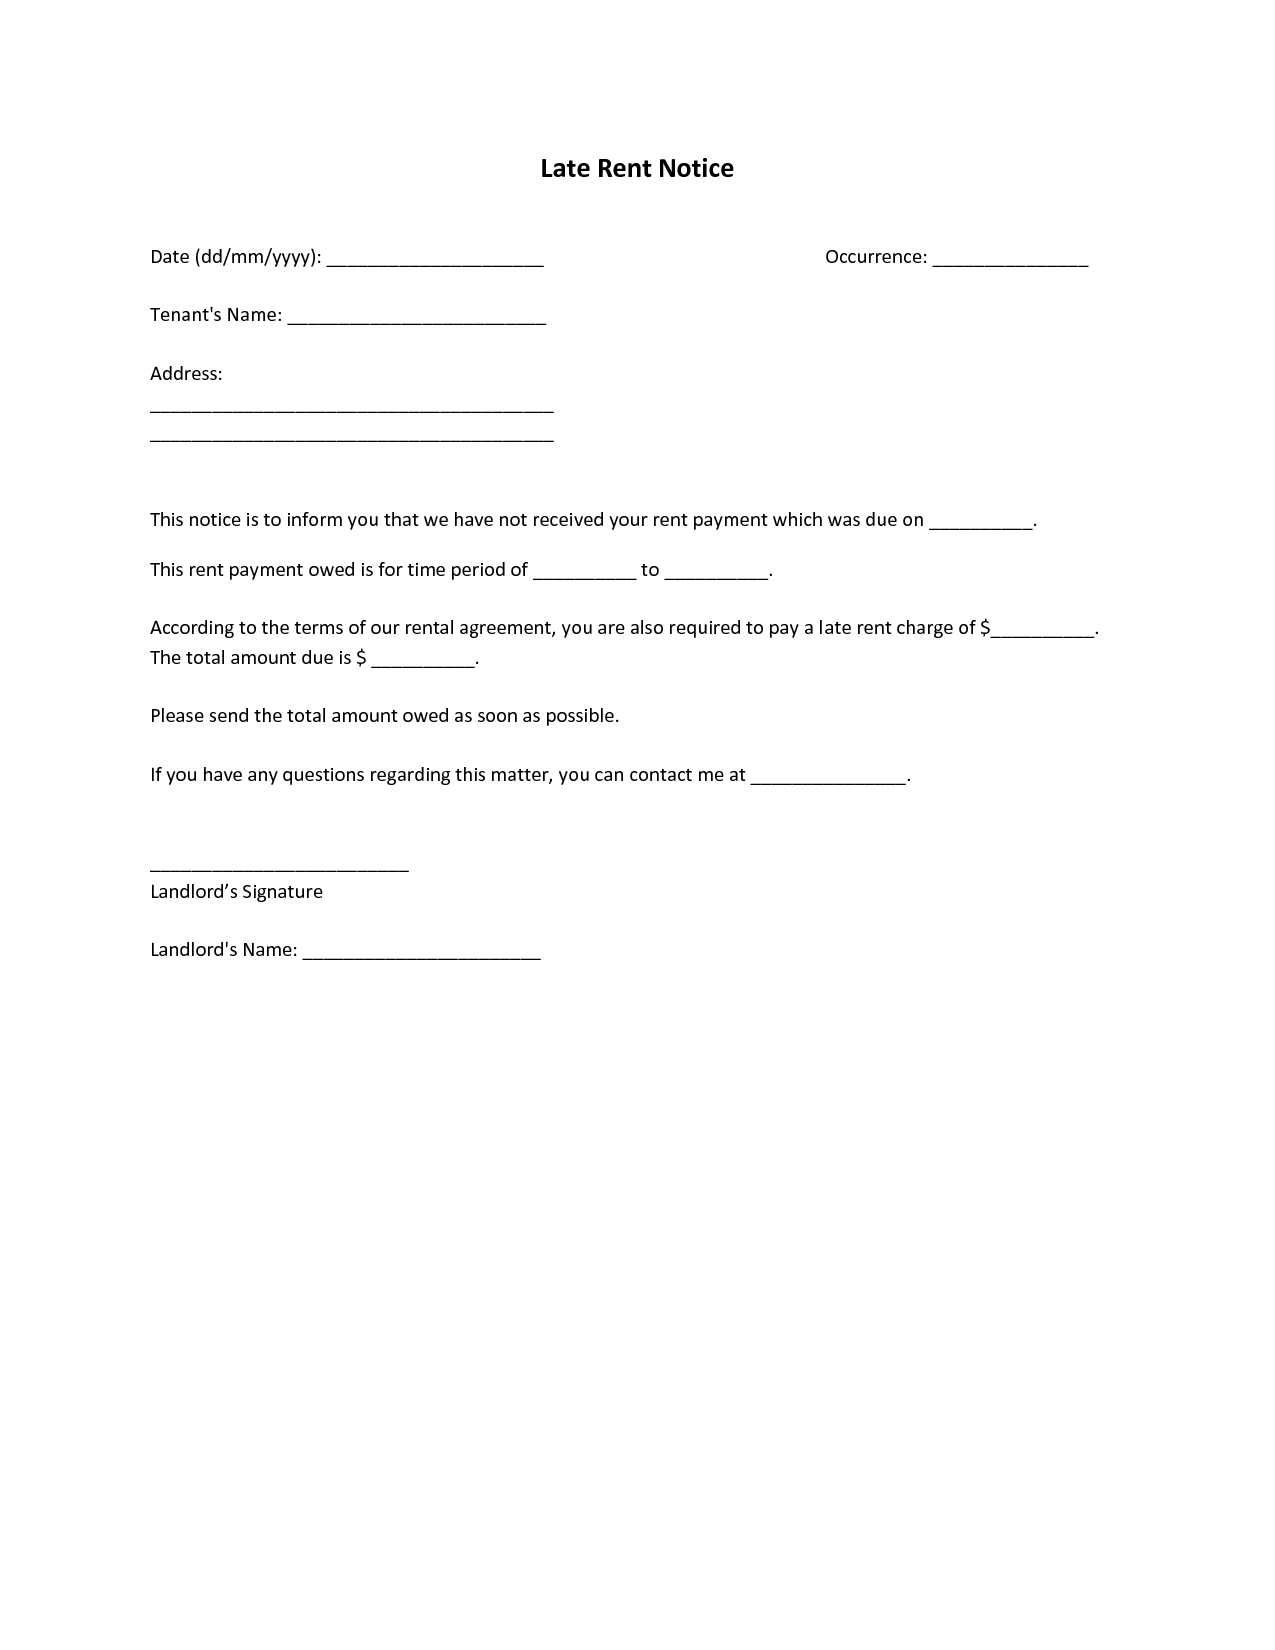 Late Rent Letter Template - Late Rent Payment Agreement Template Unique 19 New Late Rent Letter